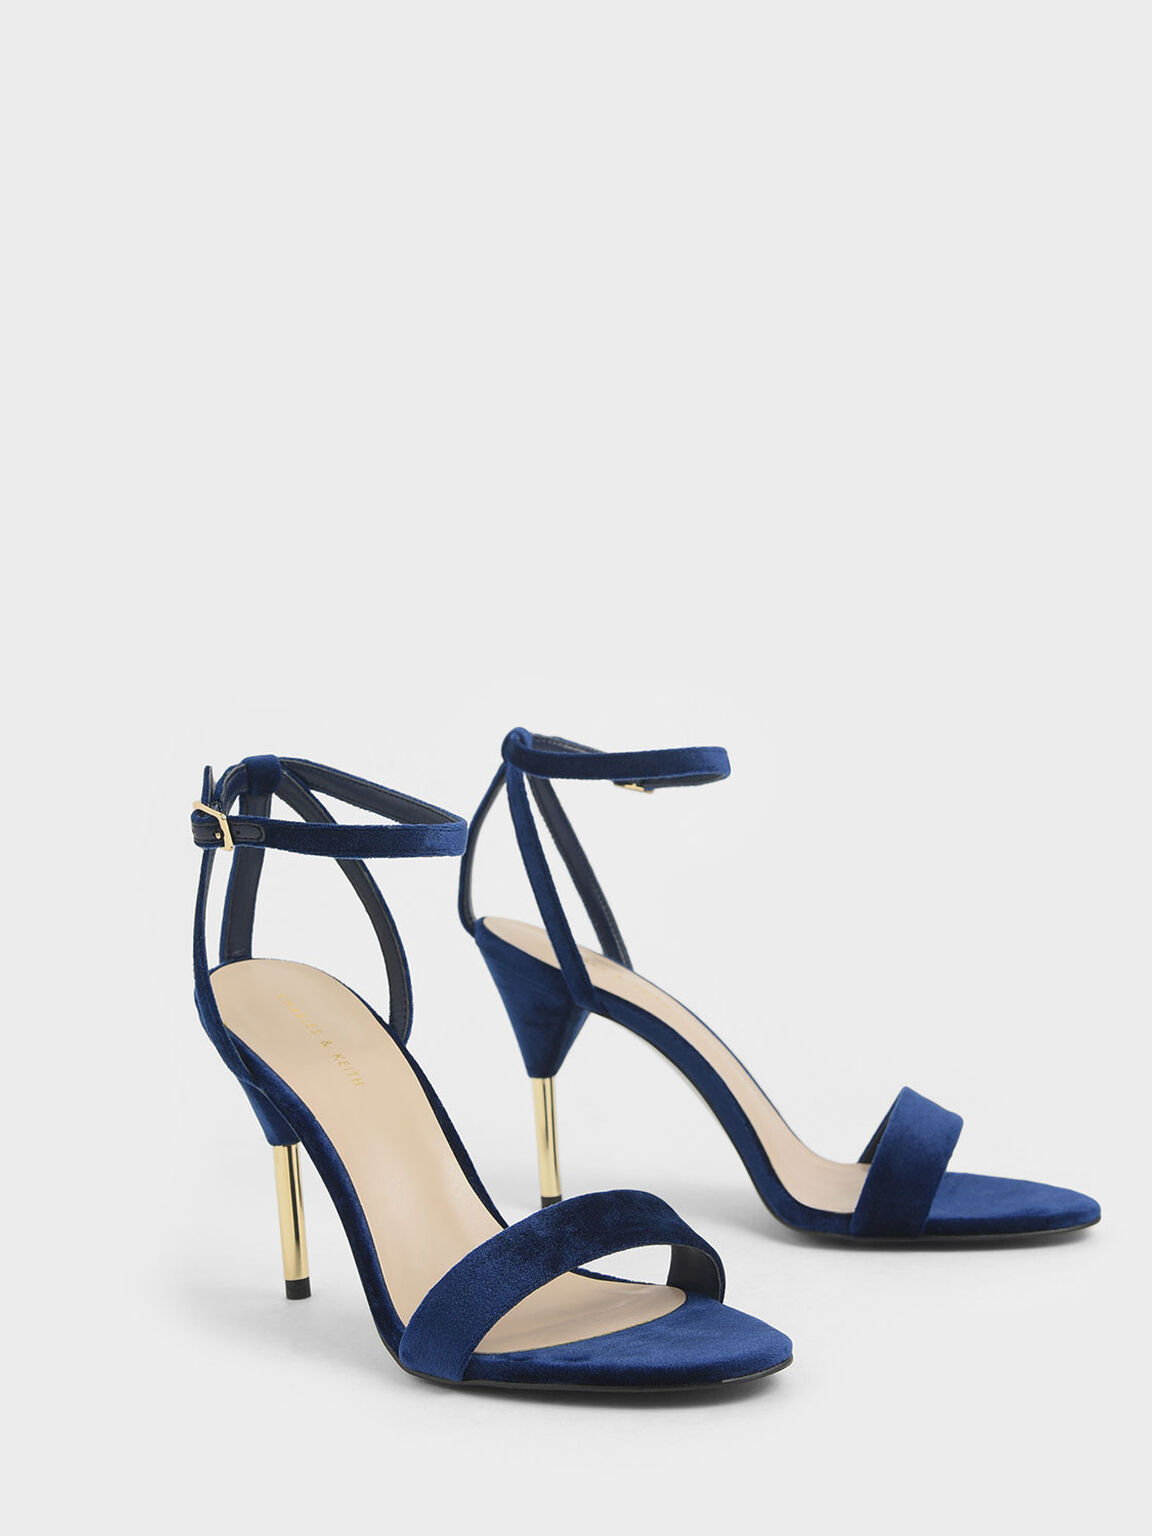 Velvet Stiletto Heels, Dark Blue, hi-res